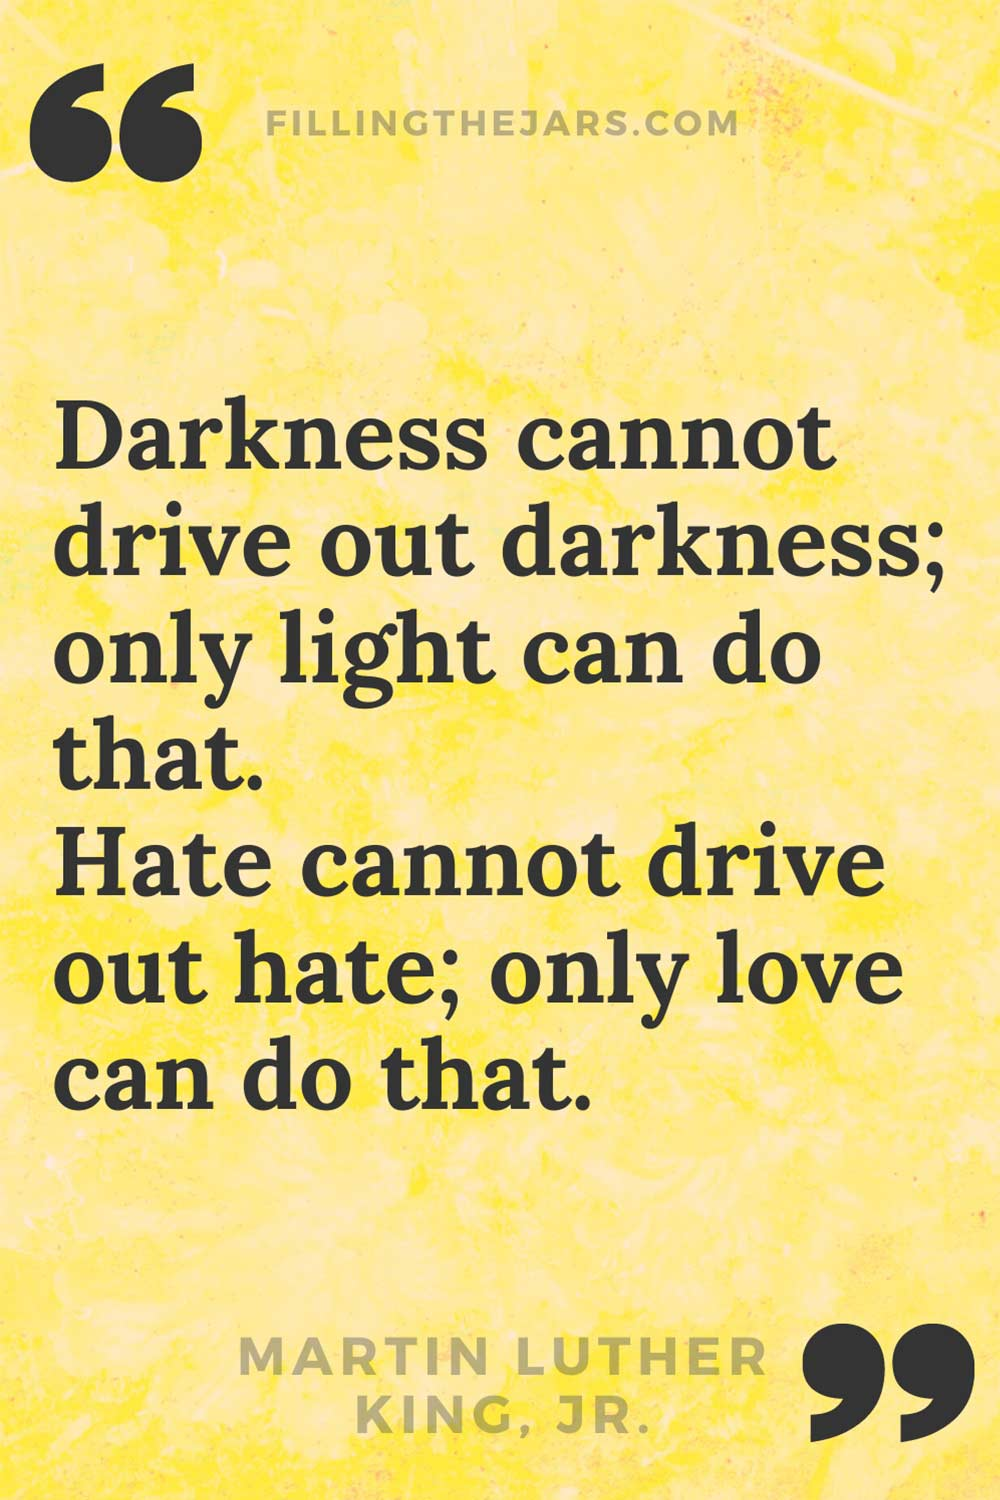 Martin Luther King Jr. only love can drive out hate quote text on mottled yellow background.